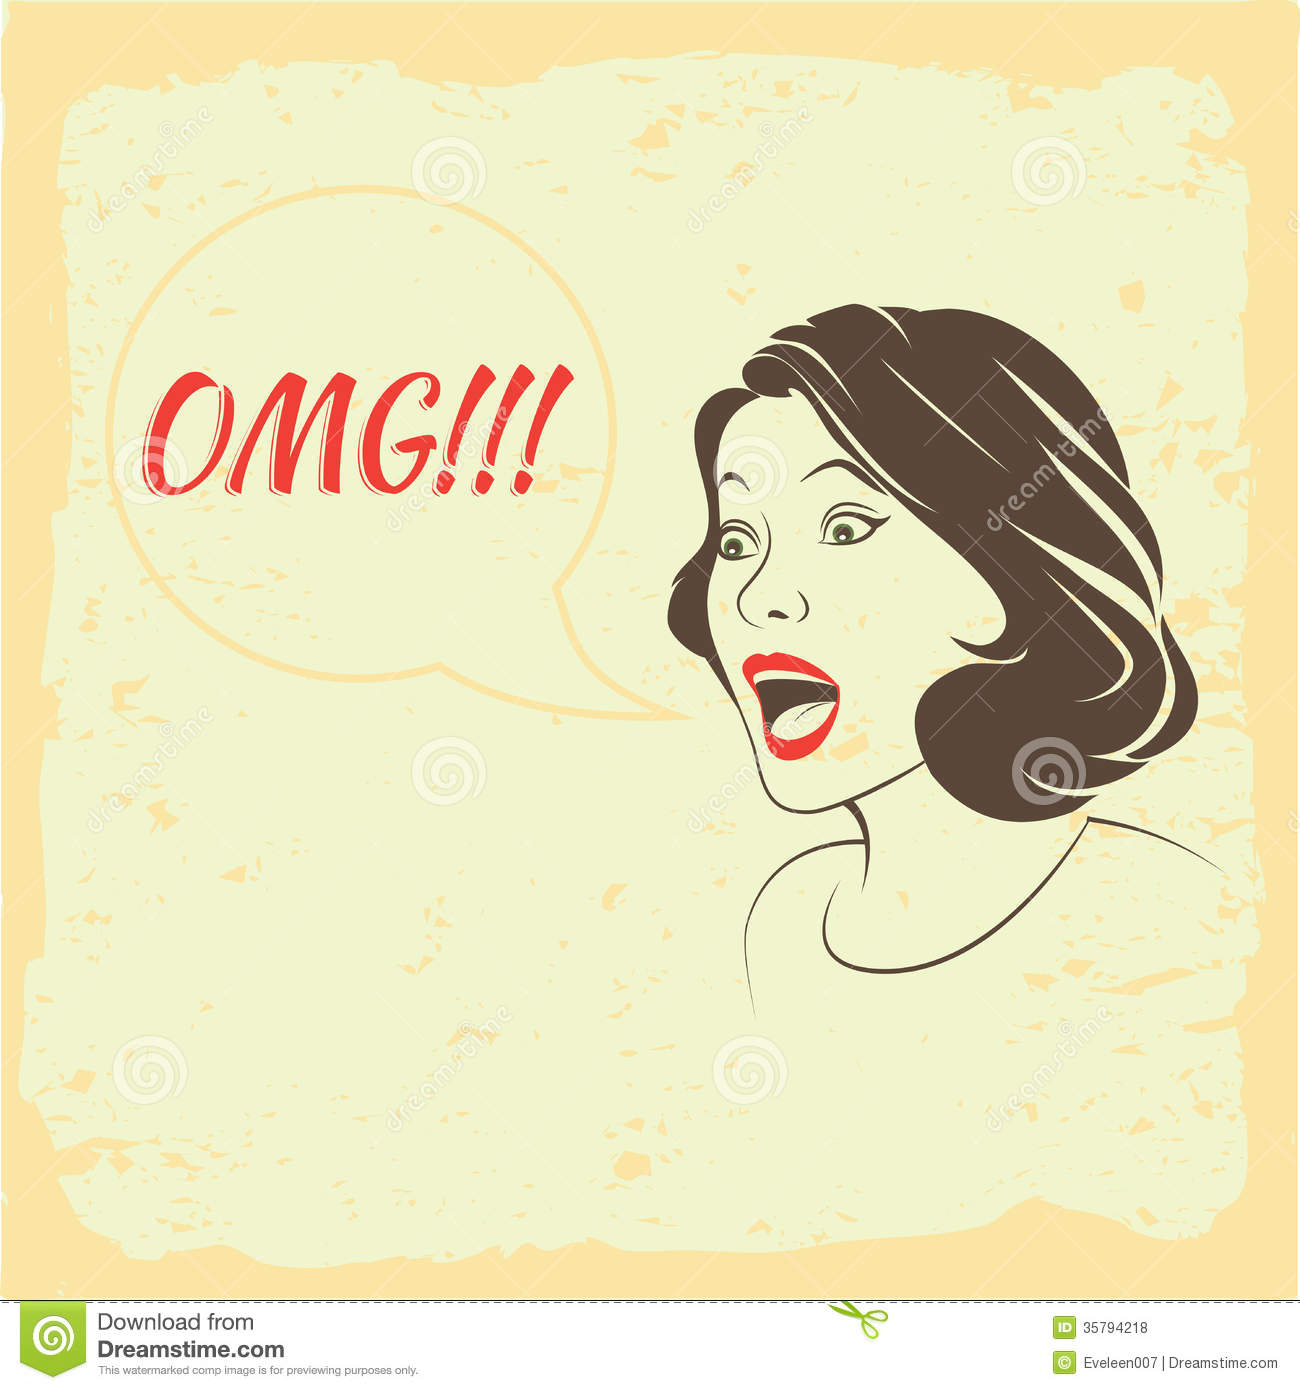 Oh My: OMG, Oh My God, Stock Vector. Image Of Scared, Defenseless